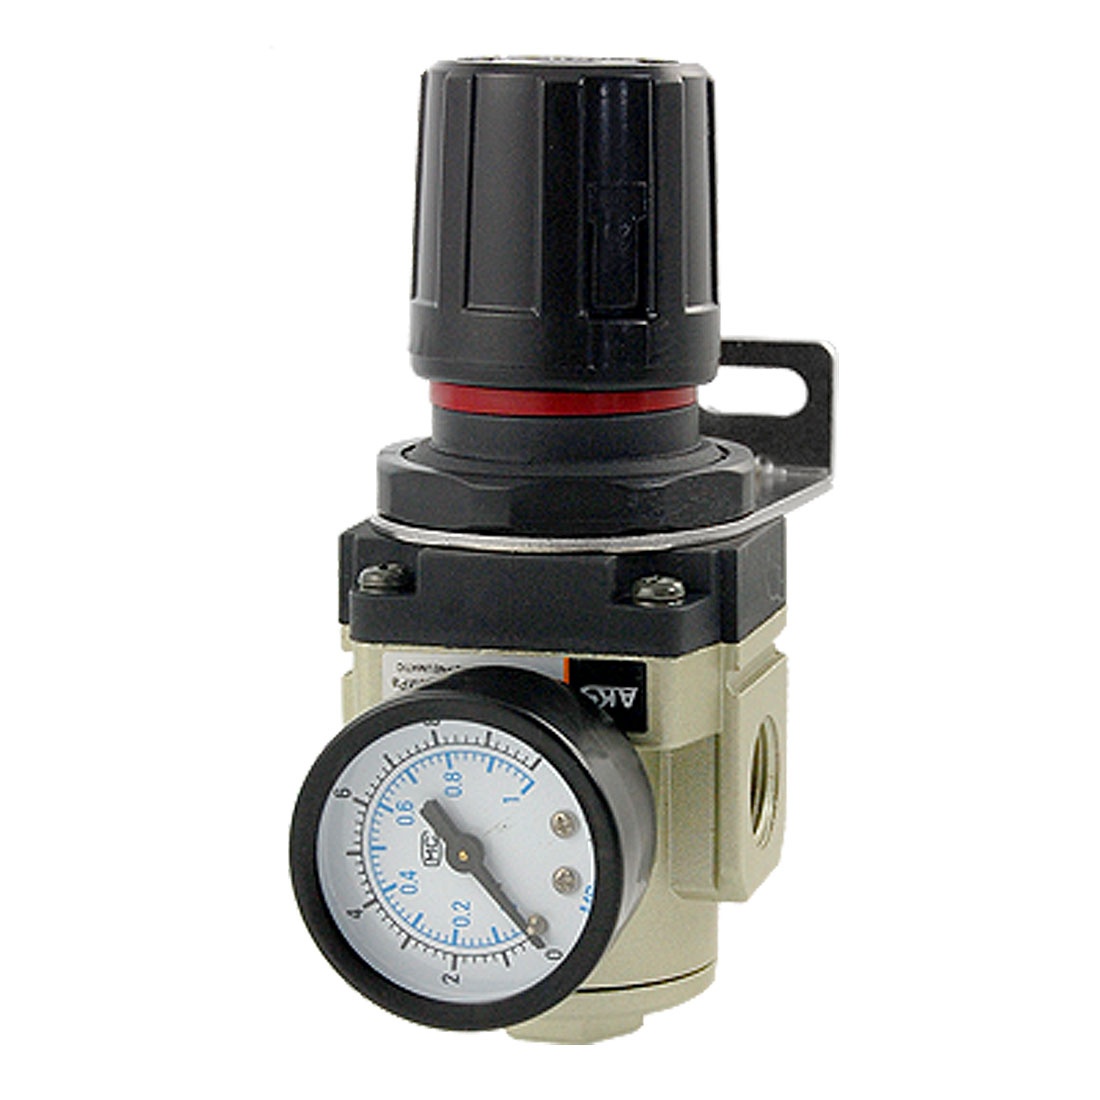 11/16 Air Compressor Pneumatic Pressure Regulator w Guage